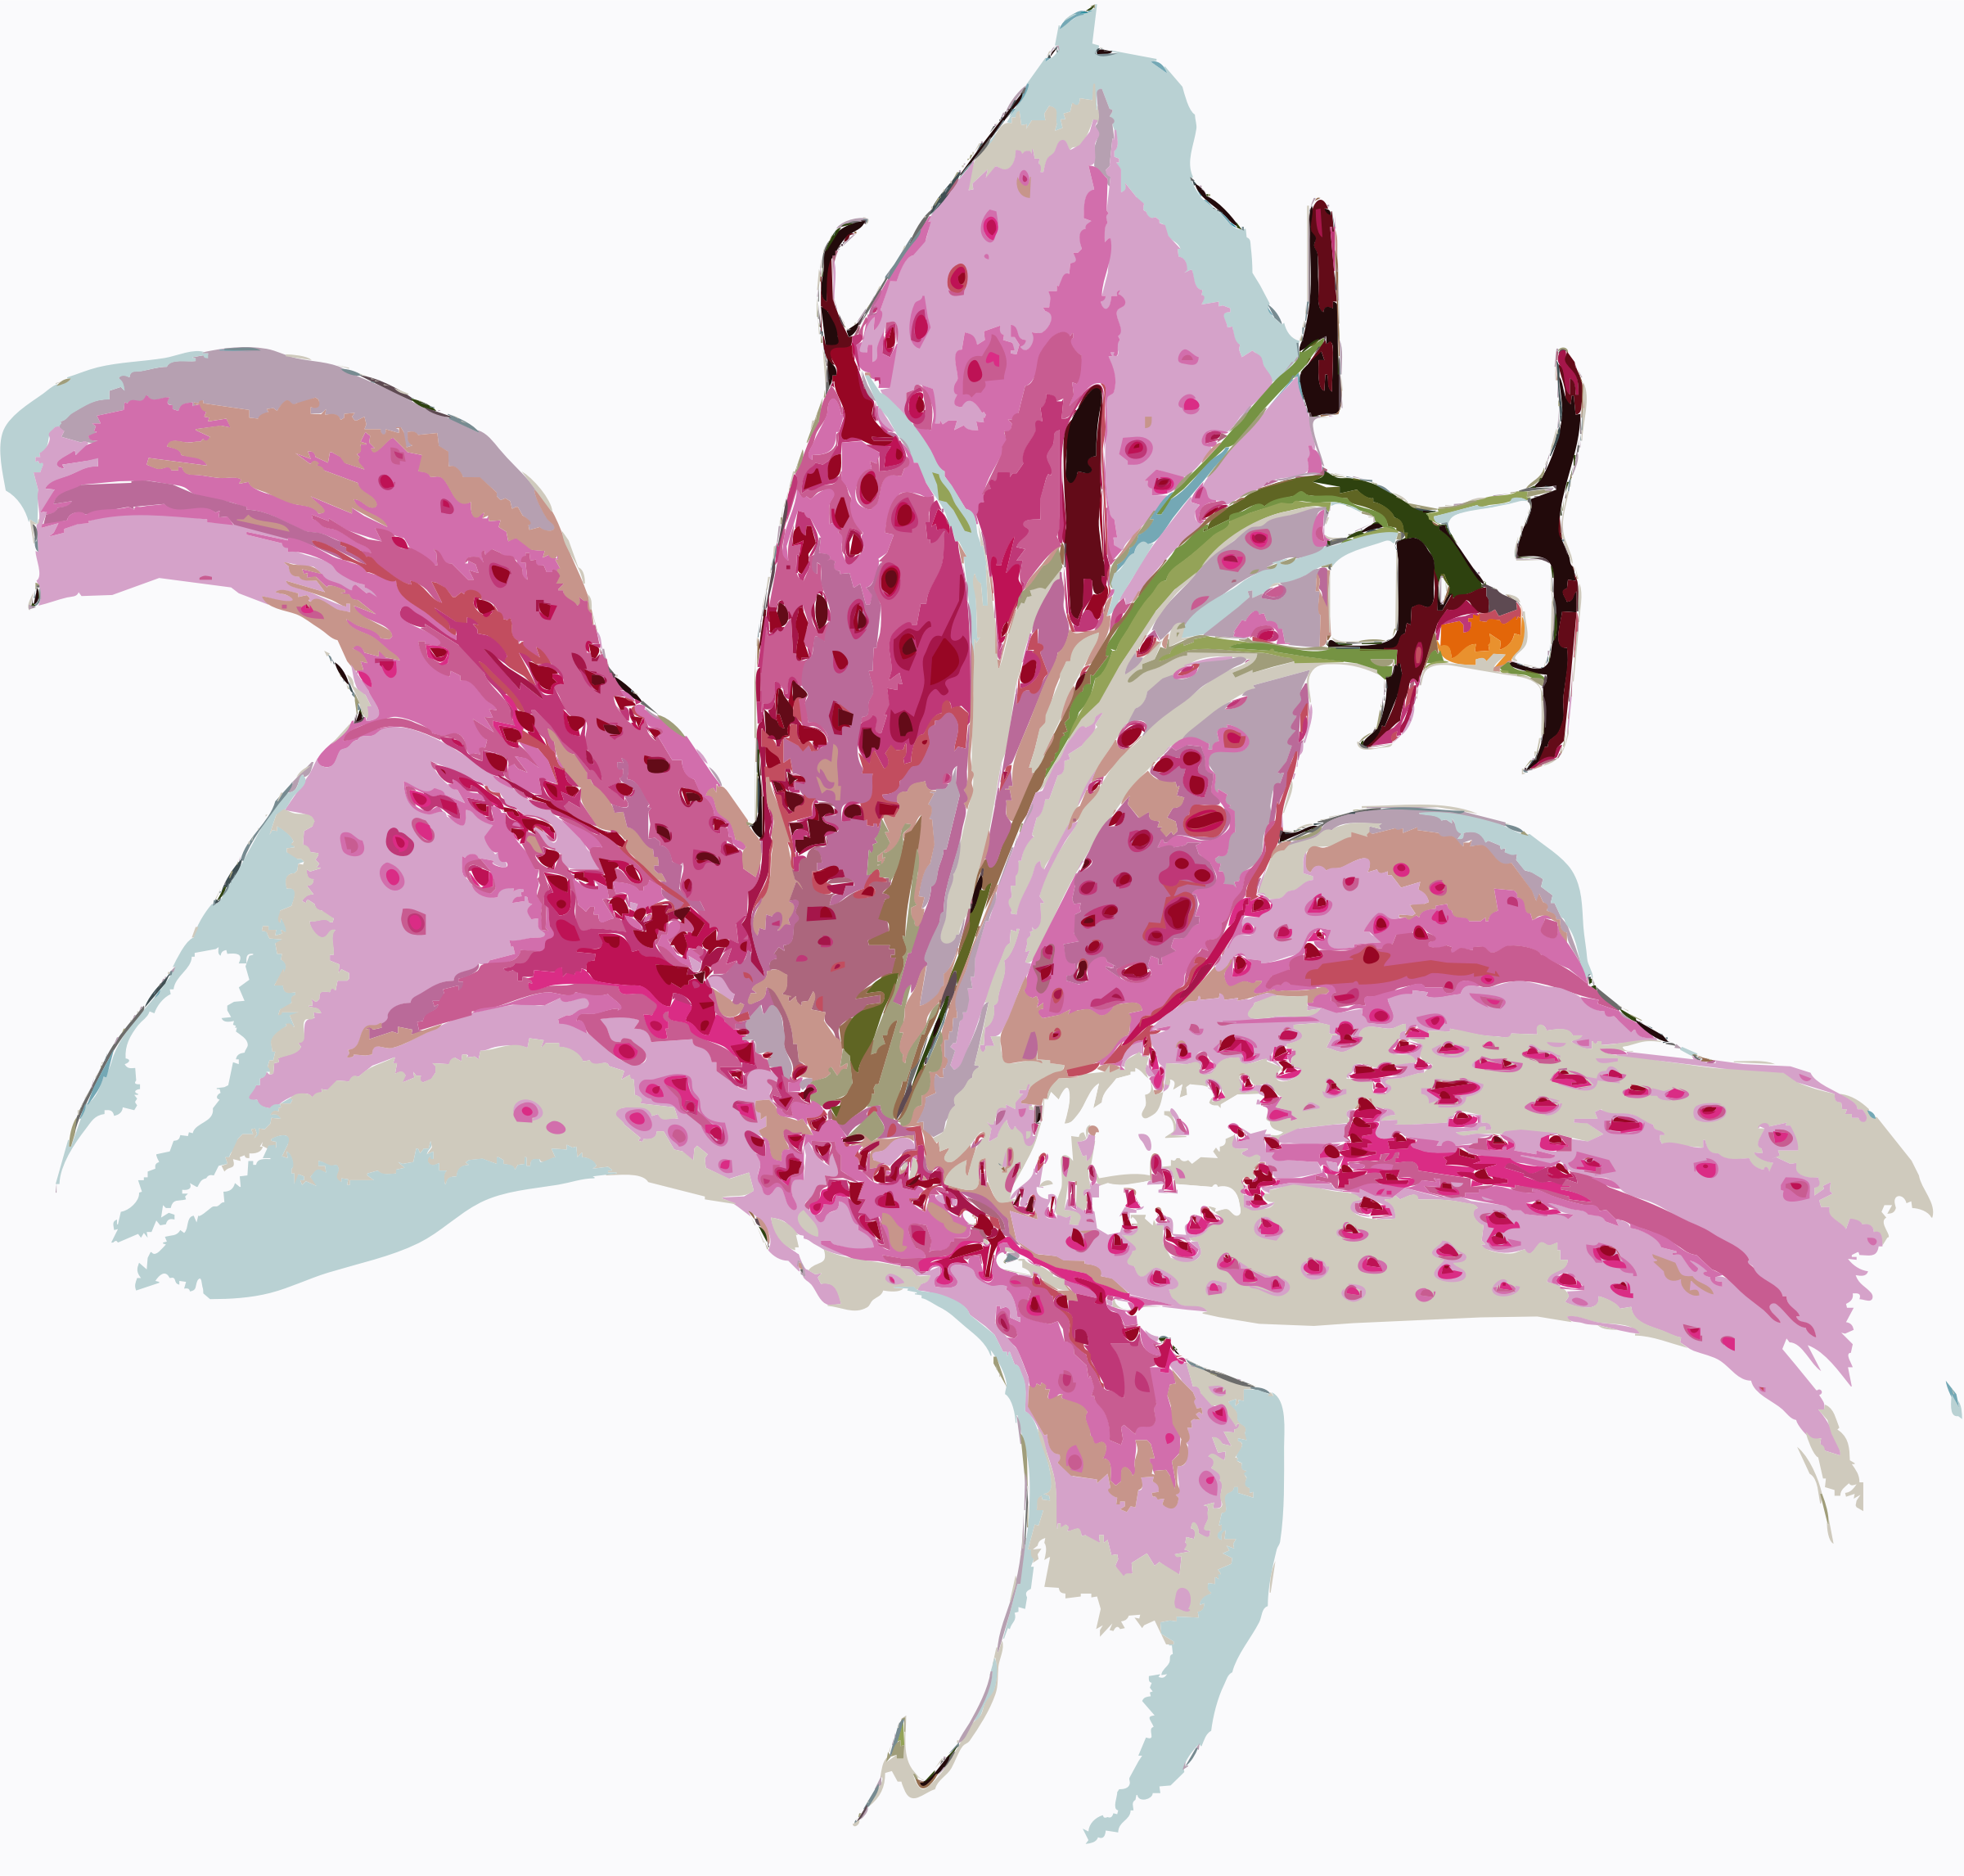 stargazer Lilly by elizagouveia